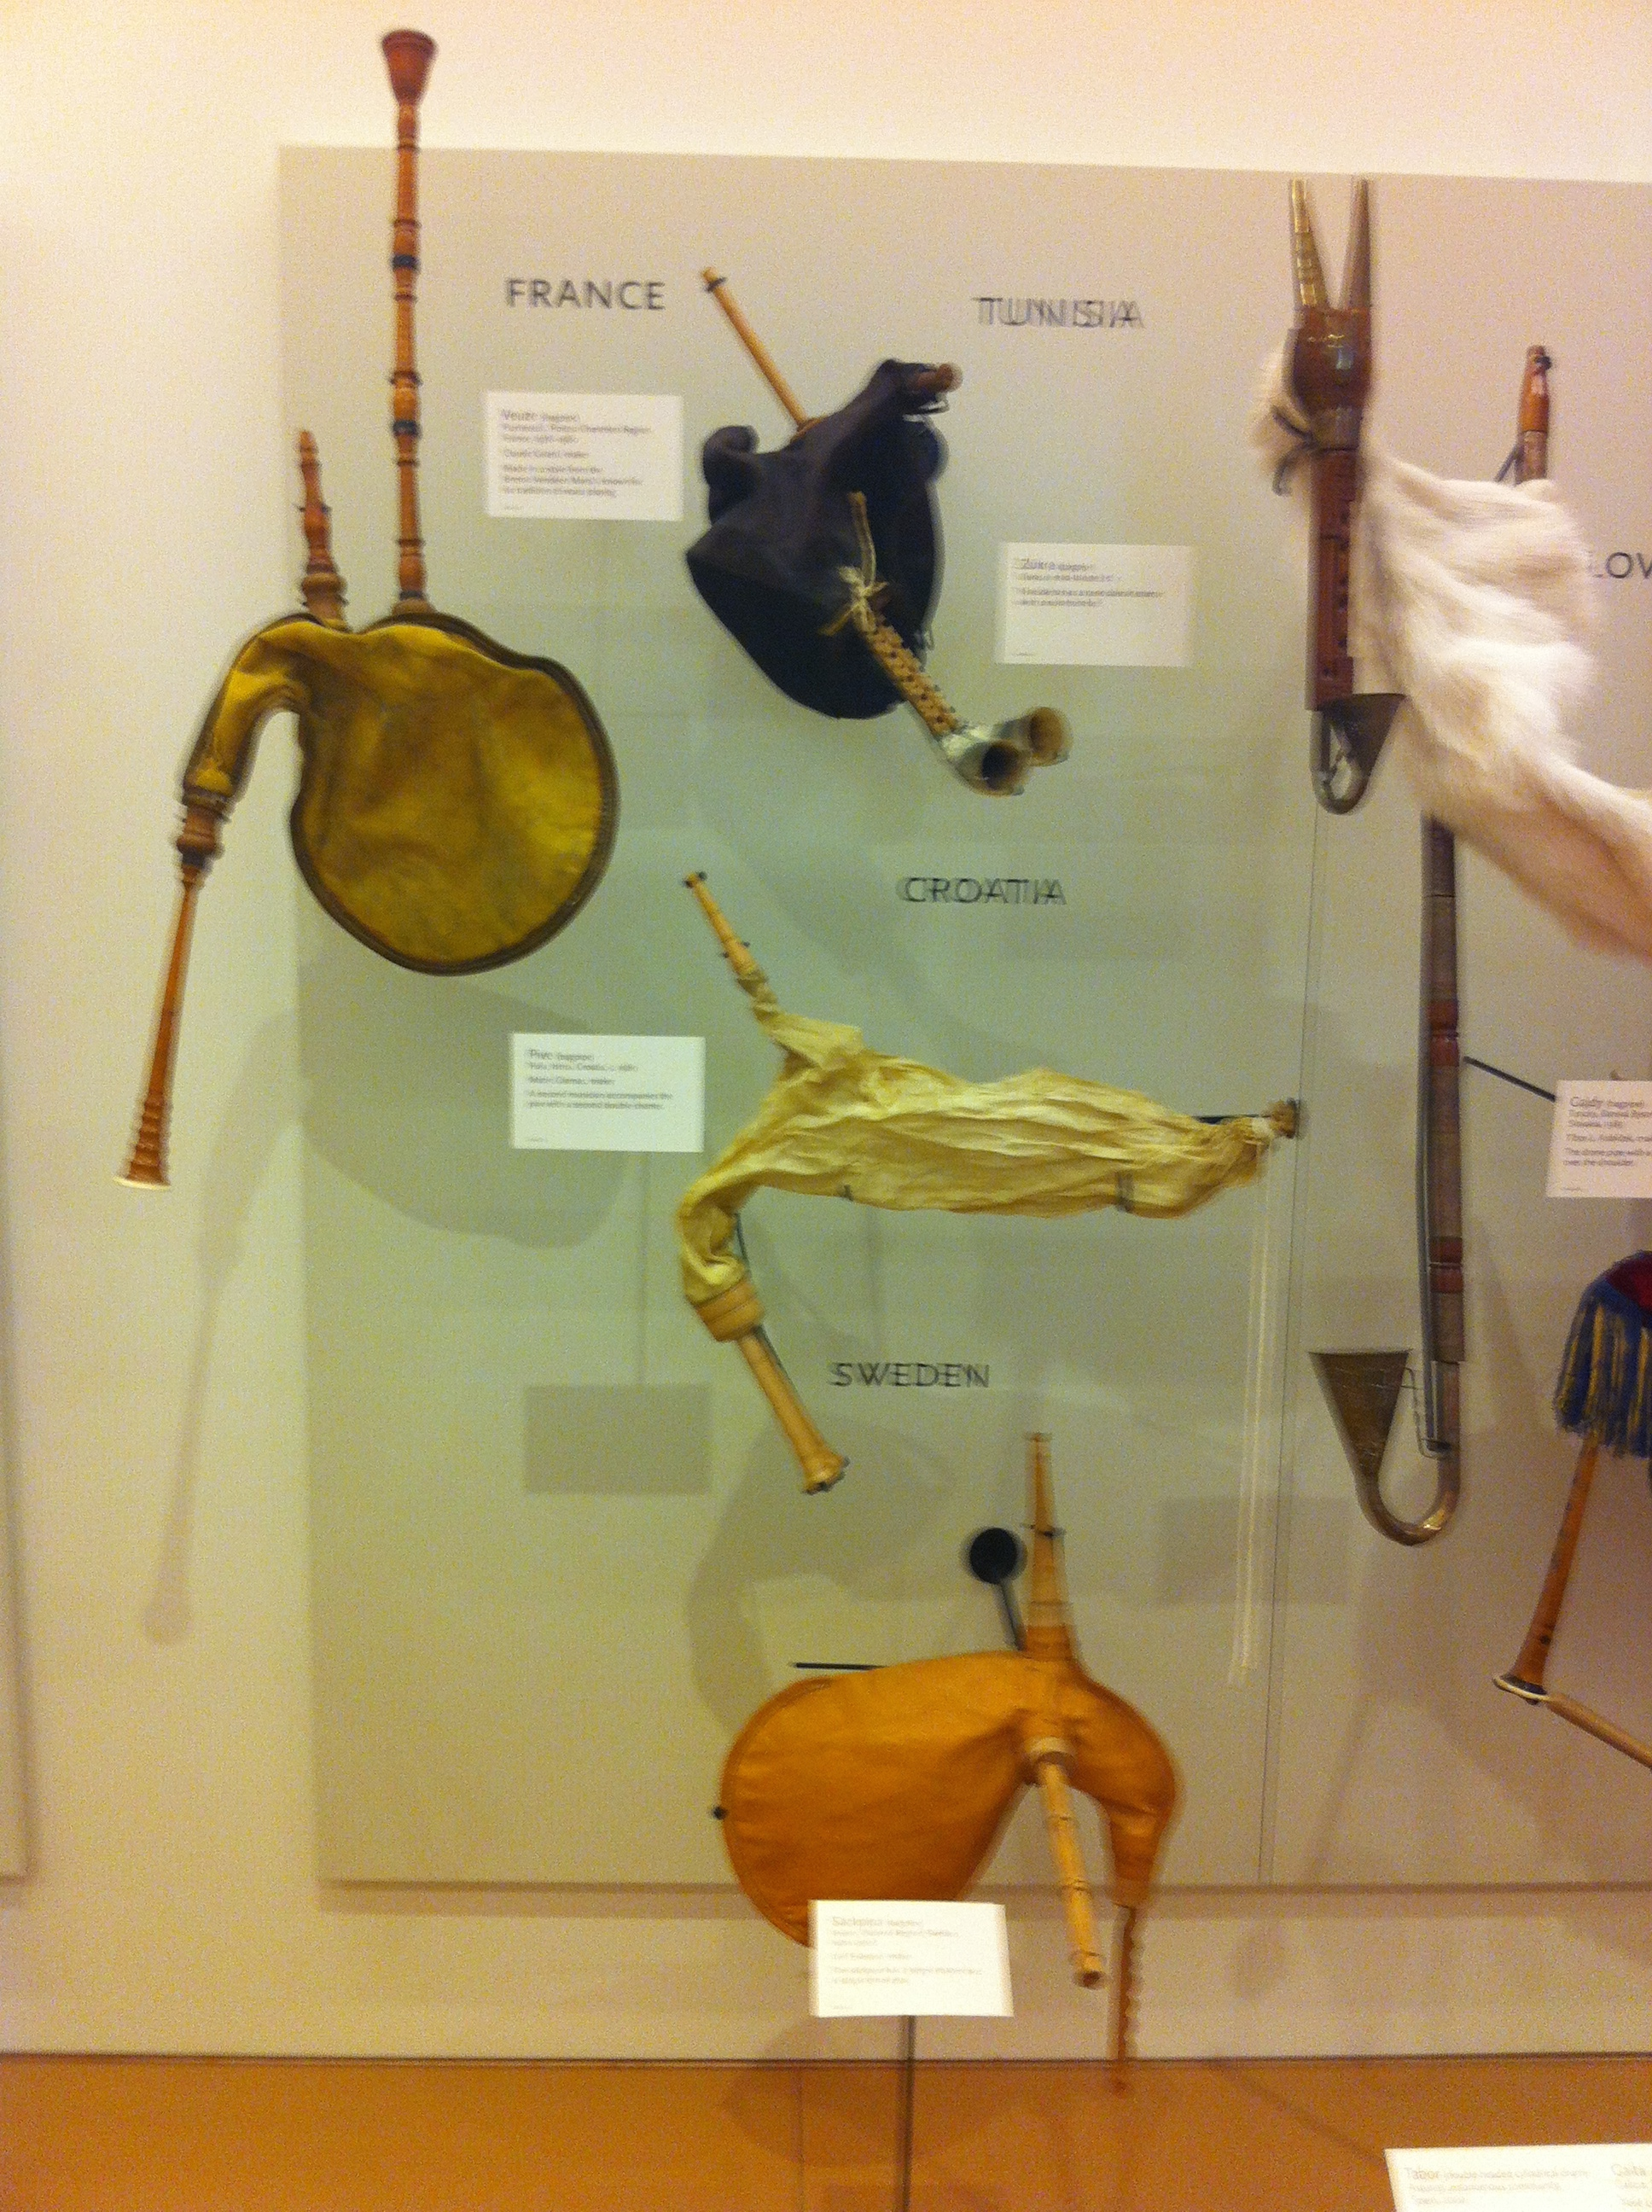 The evolution of the bag pipes.